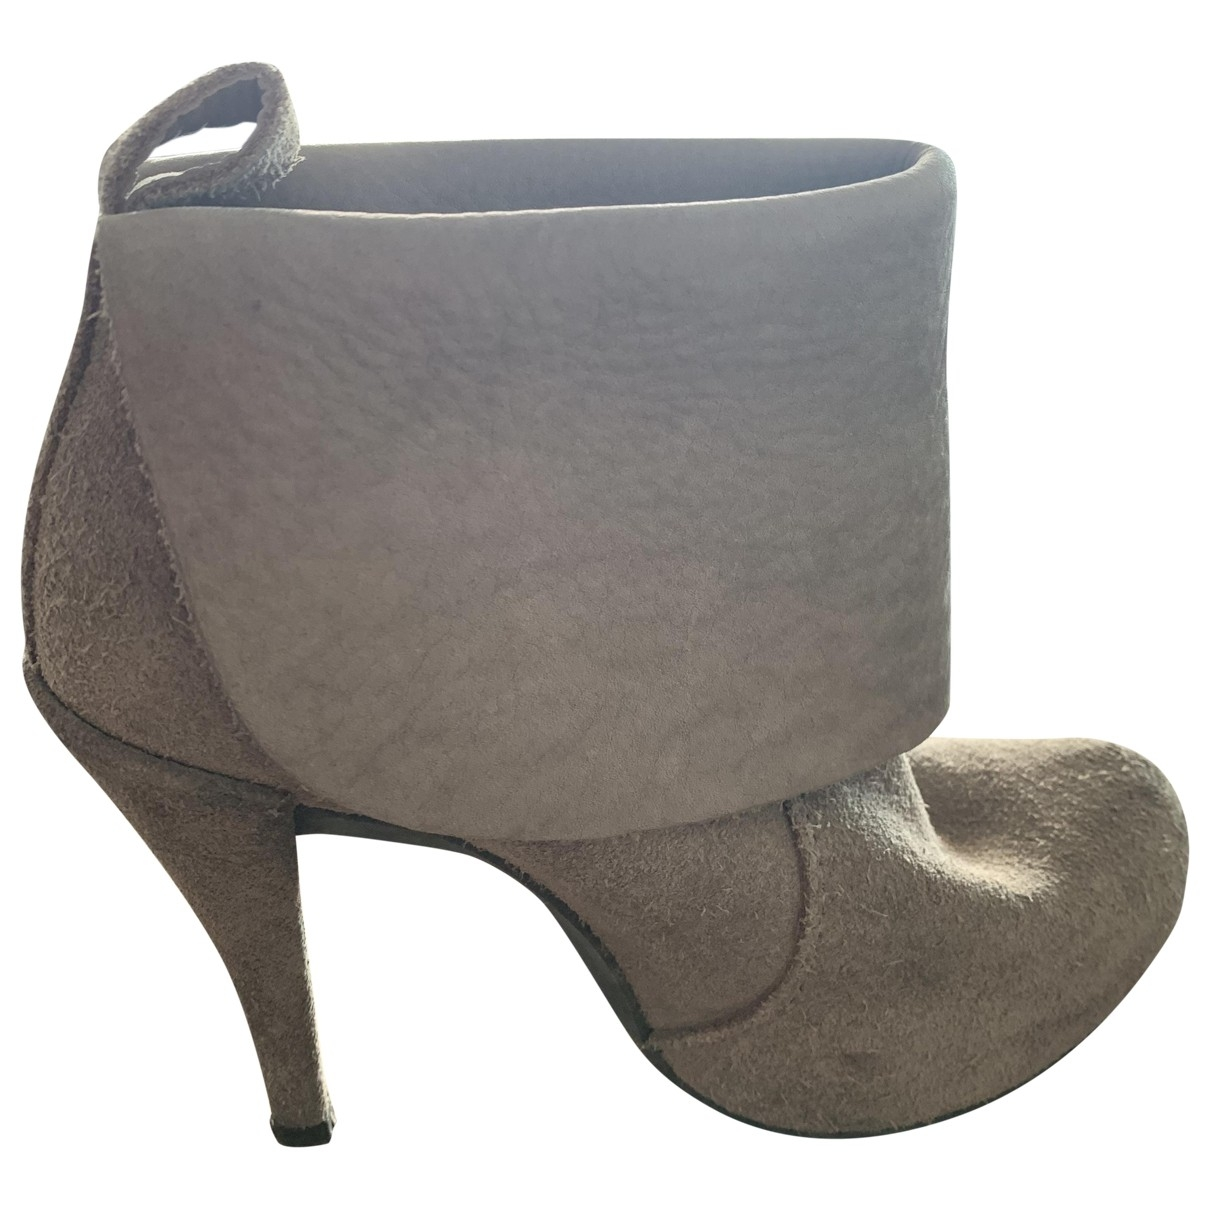 Pedro Garcia \N Suede Ankle boots for Women 37 IT